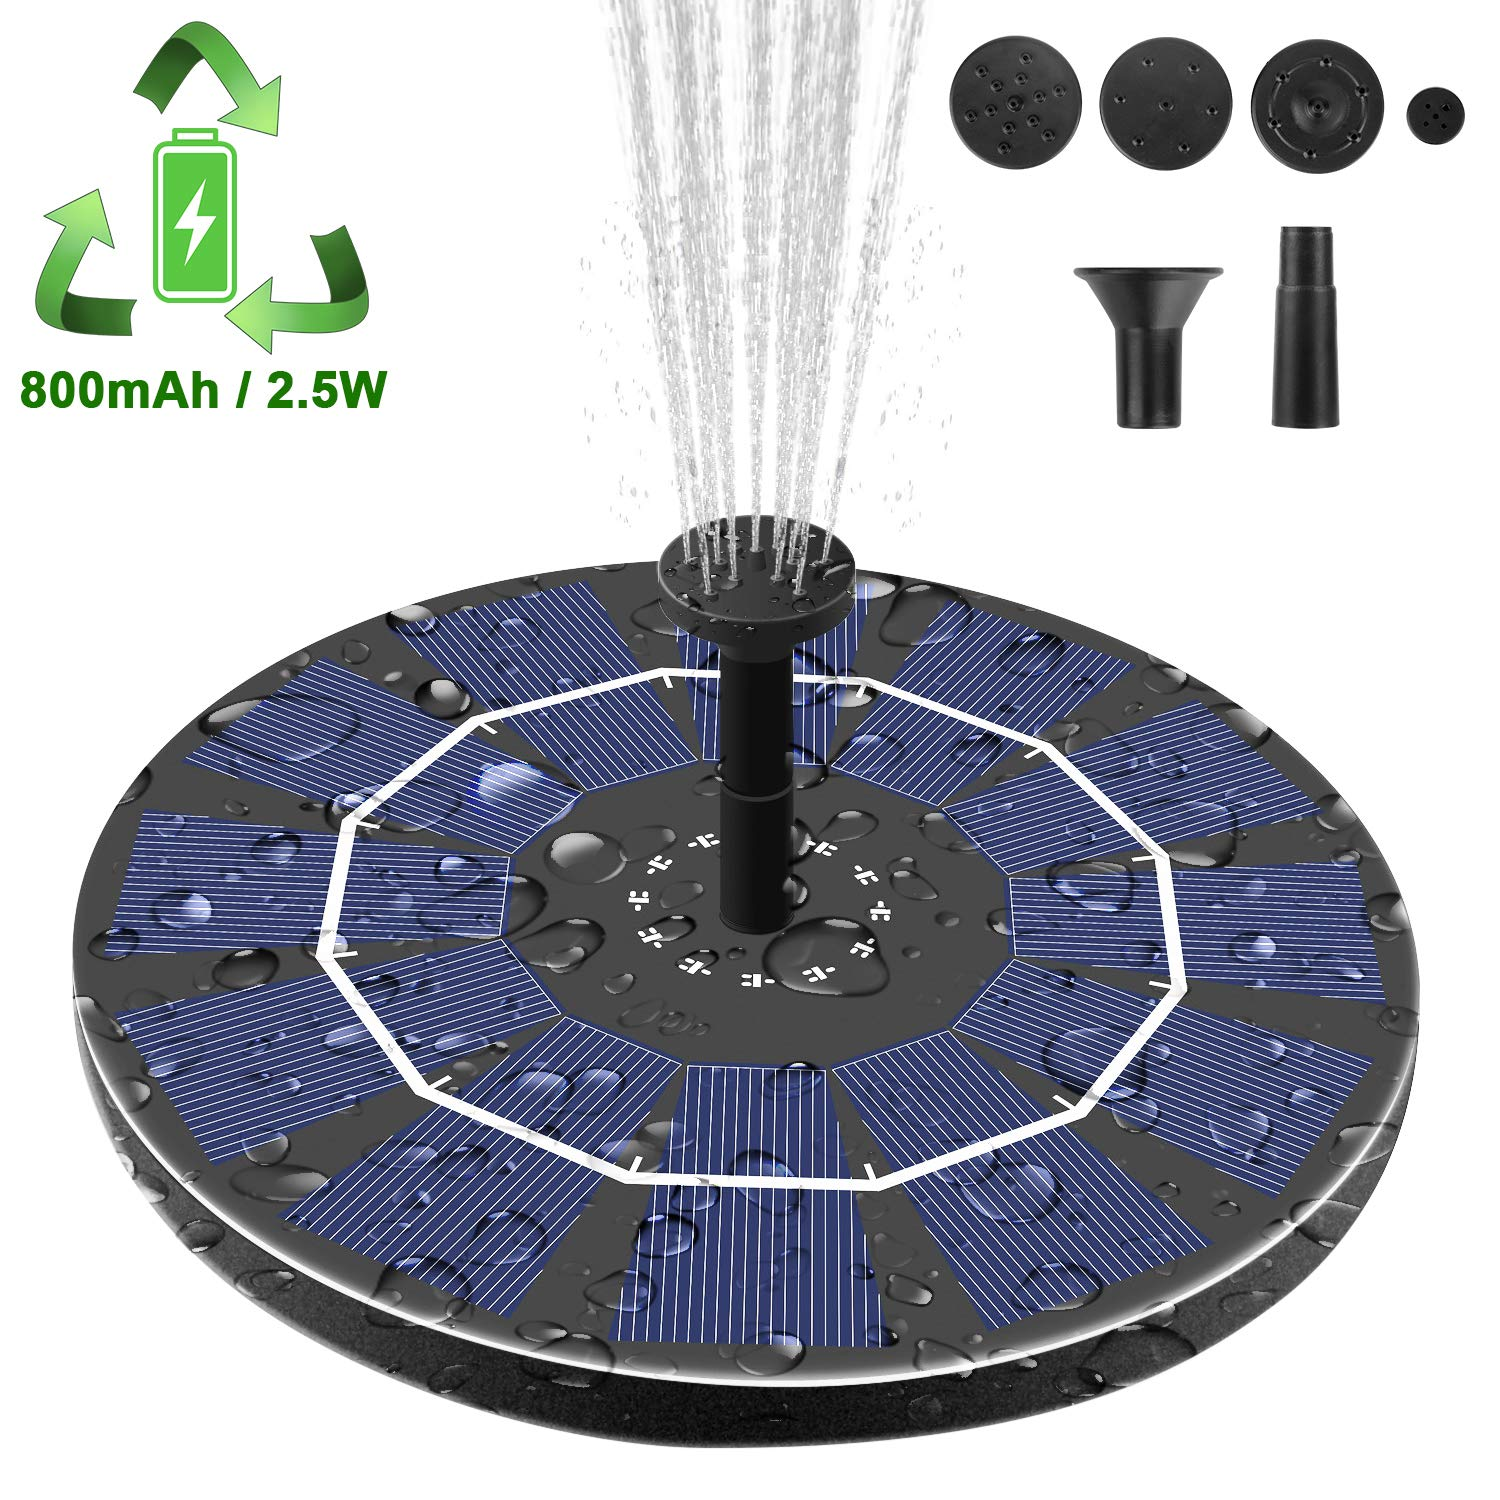 Viajero Latest Upgrade 2.5W Solar Fountain Pump